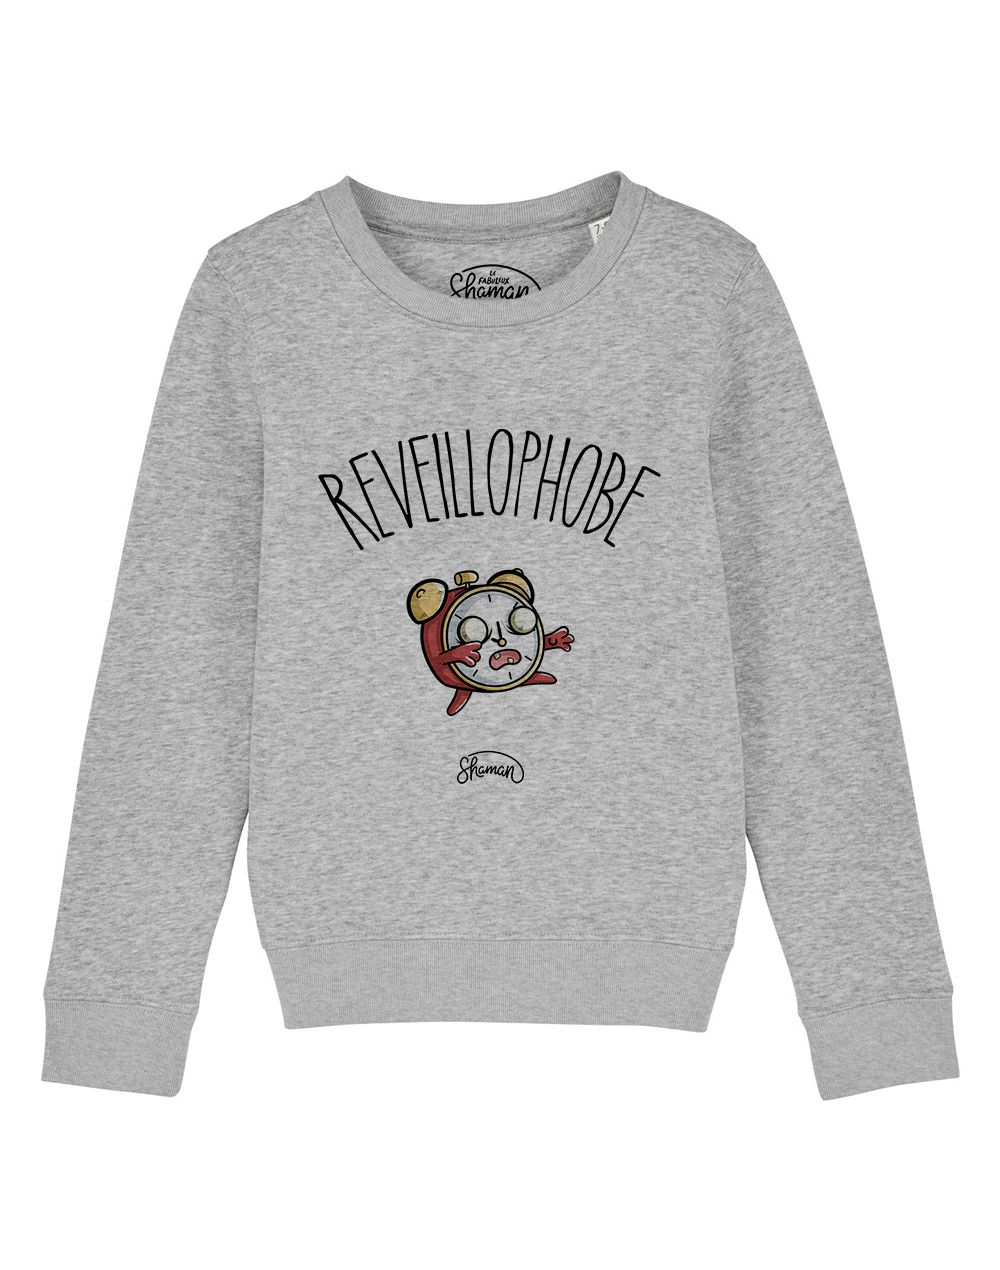 "Sweat ""Reveillophobe"""